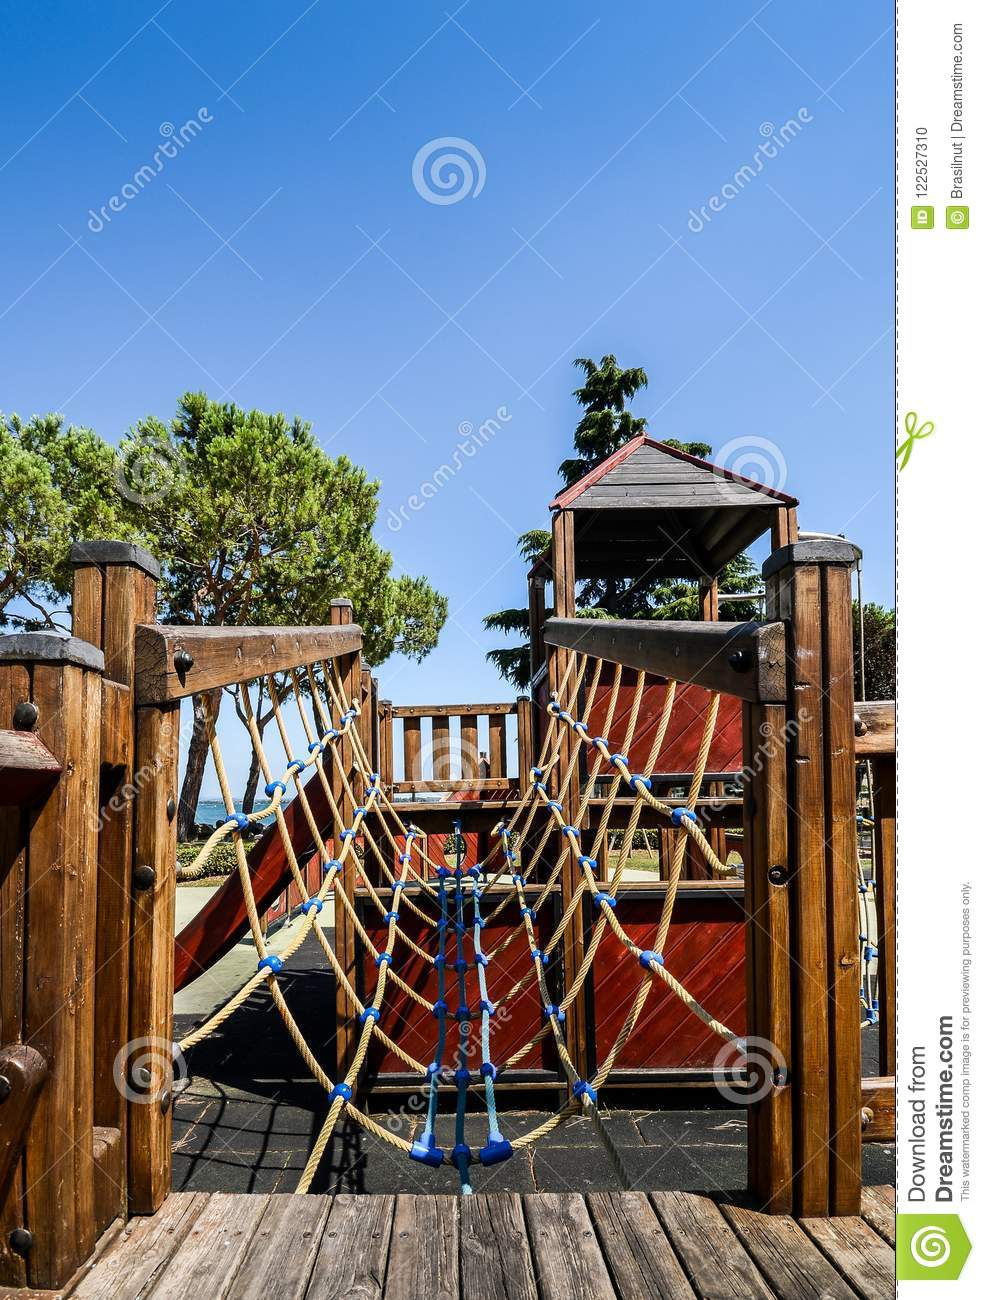 Outdoor adventure playground for kids overlooking beautiful Lake Garda in Lombardy Italy